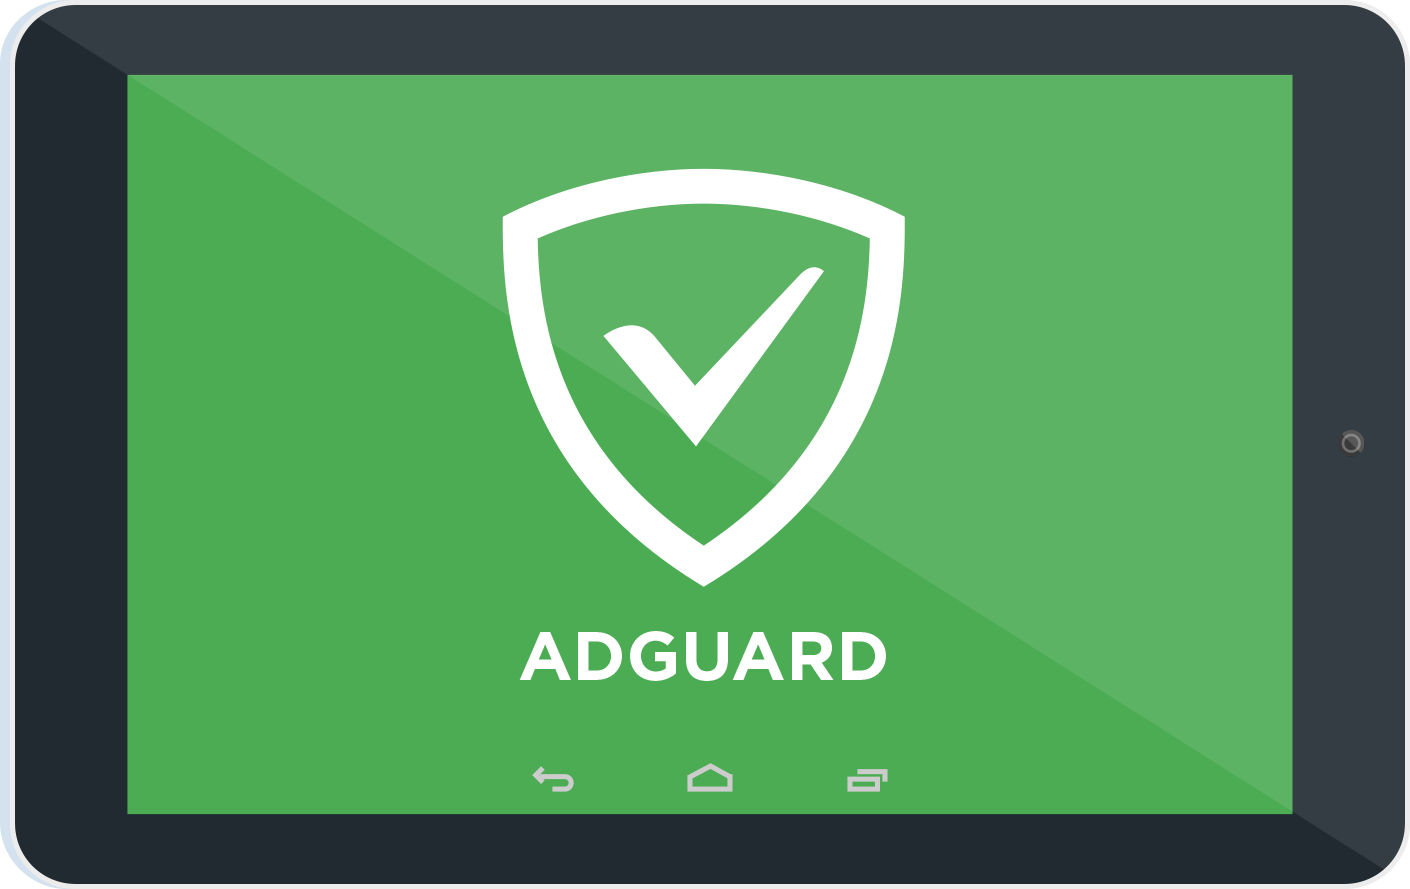 New version: Adguard for Android